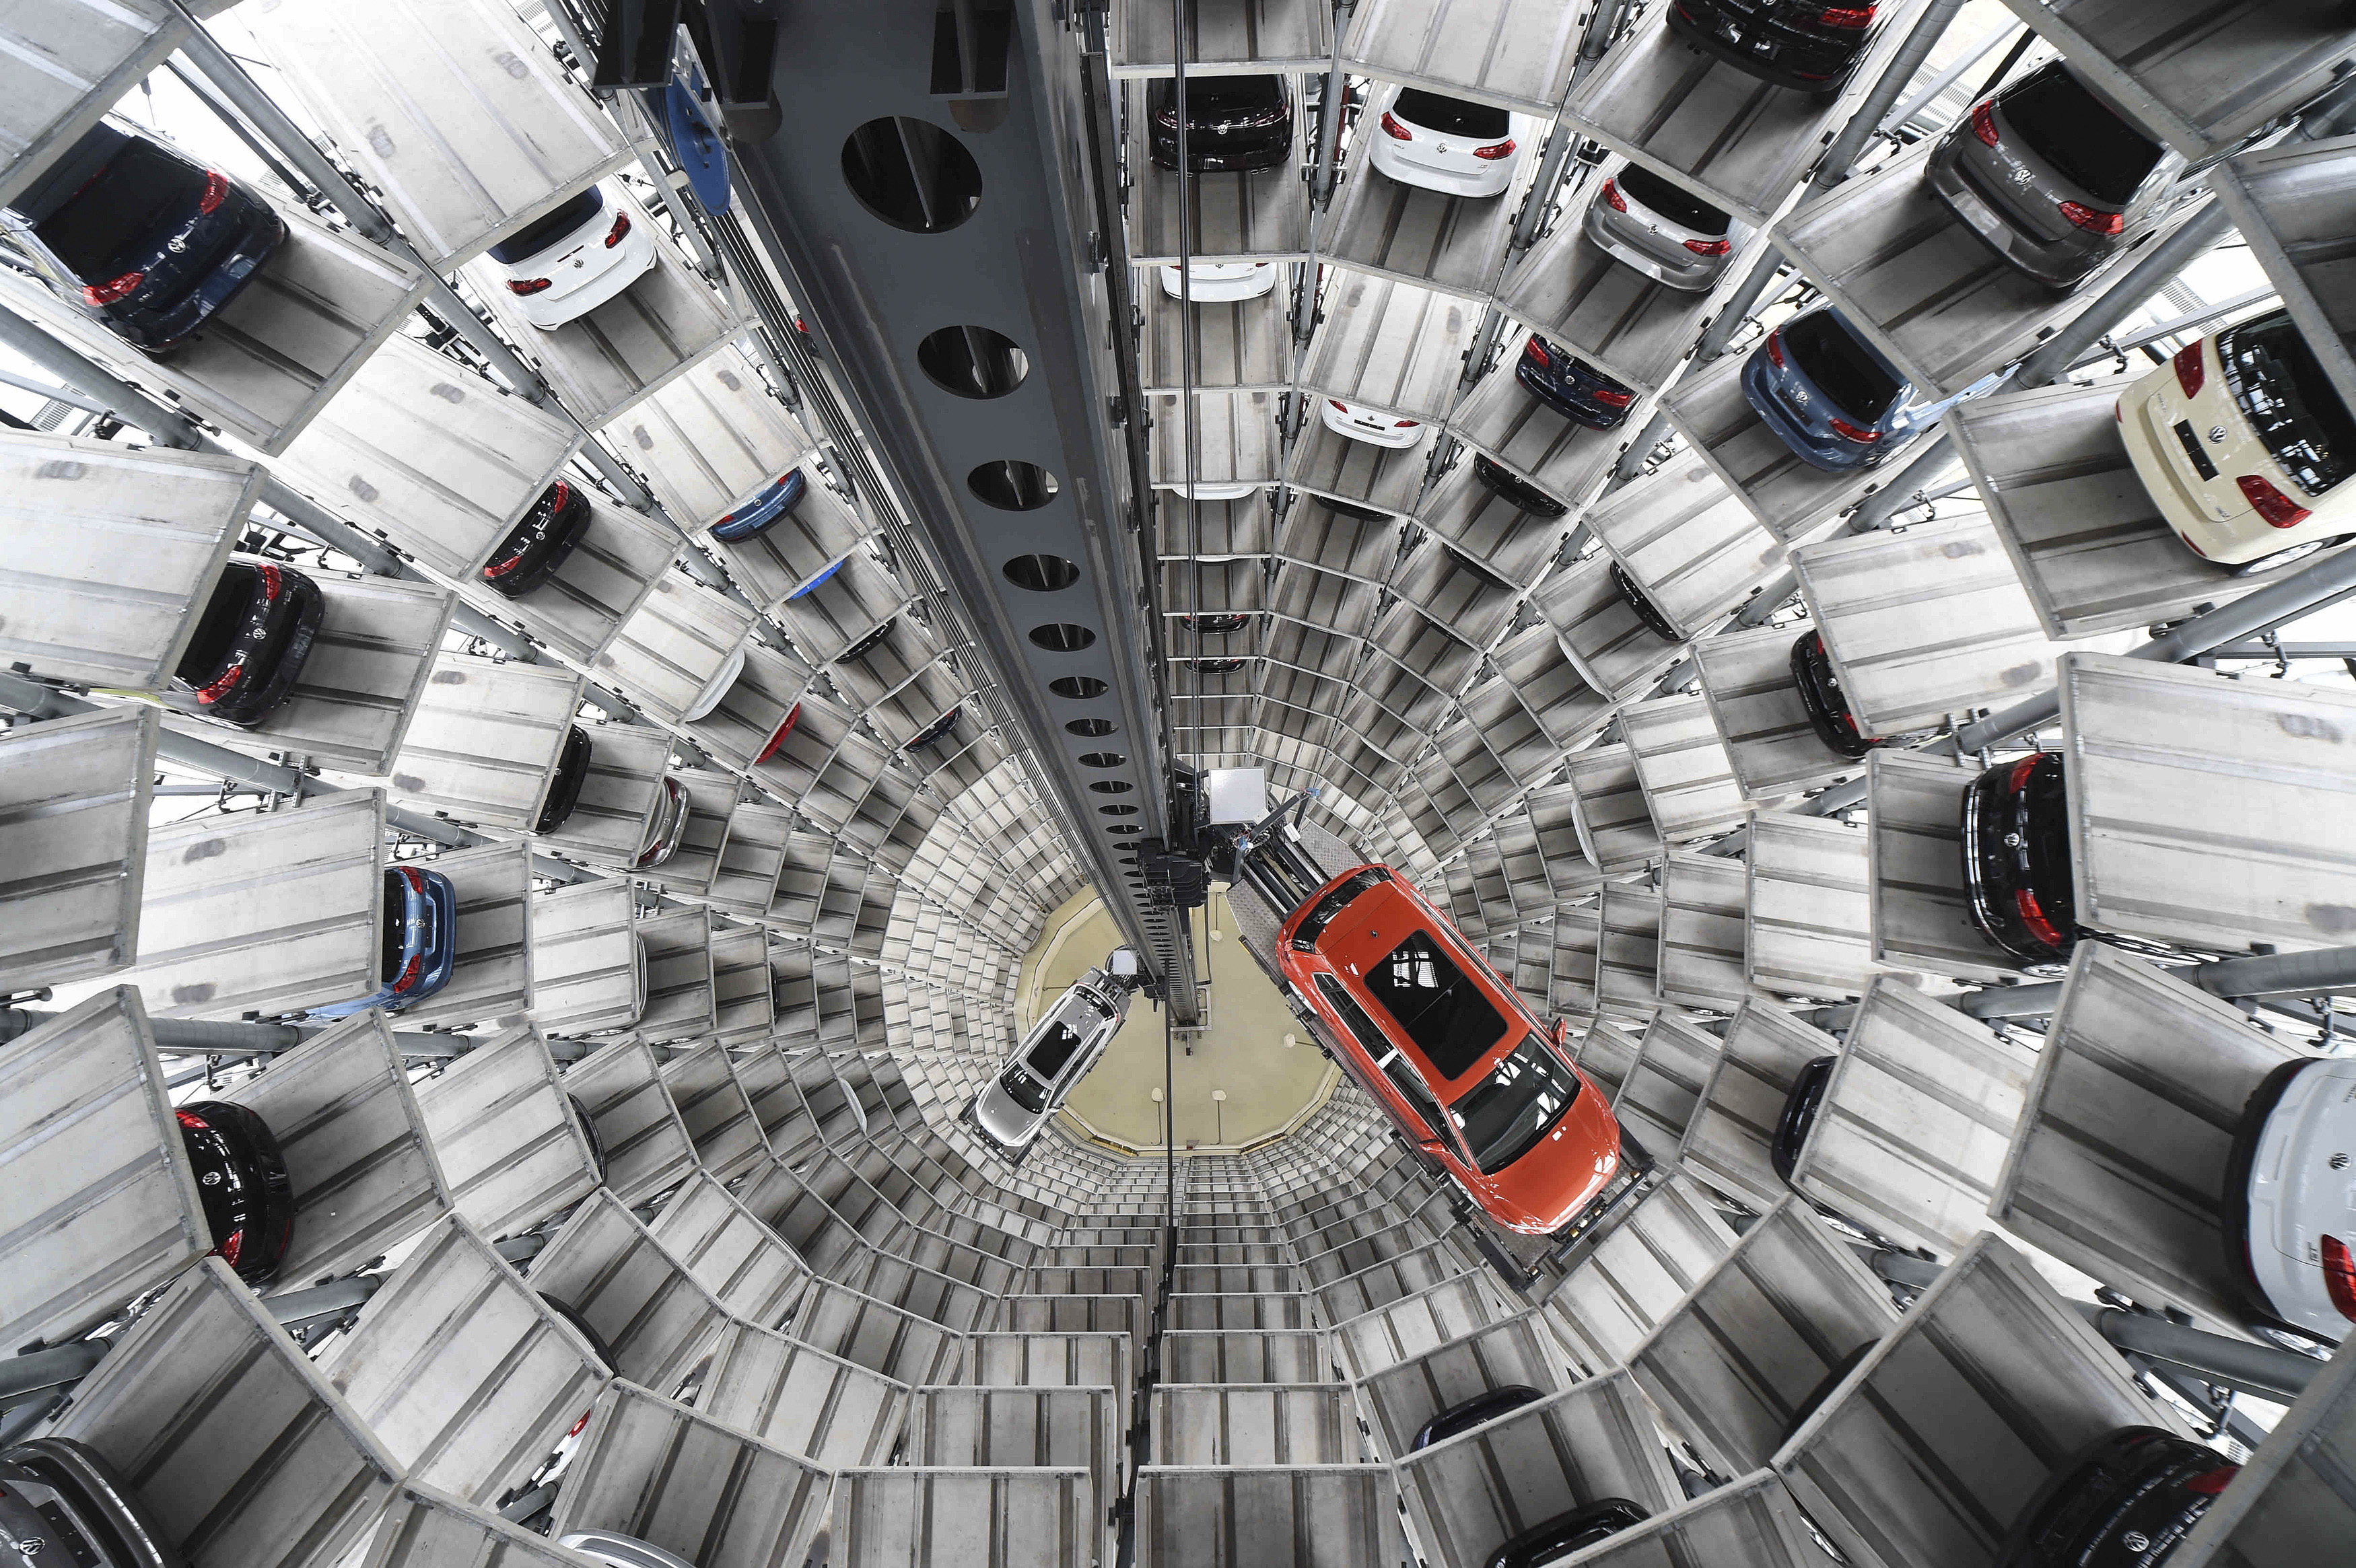 A VW Golf VII car and a VW Passat are loaded  in a delivery tower at the plant of German carmaker Volkswagen in Wolfsburg